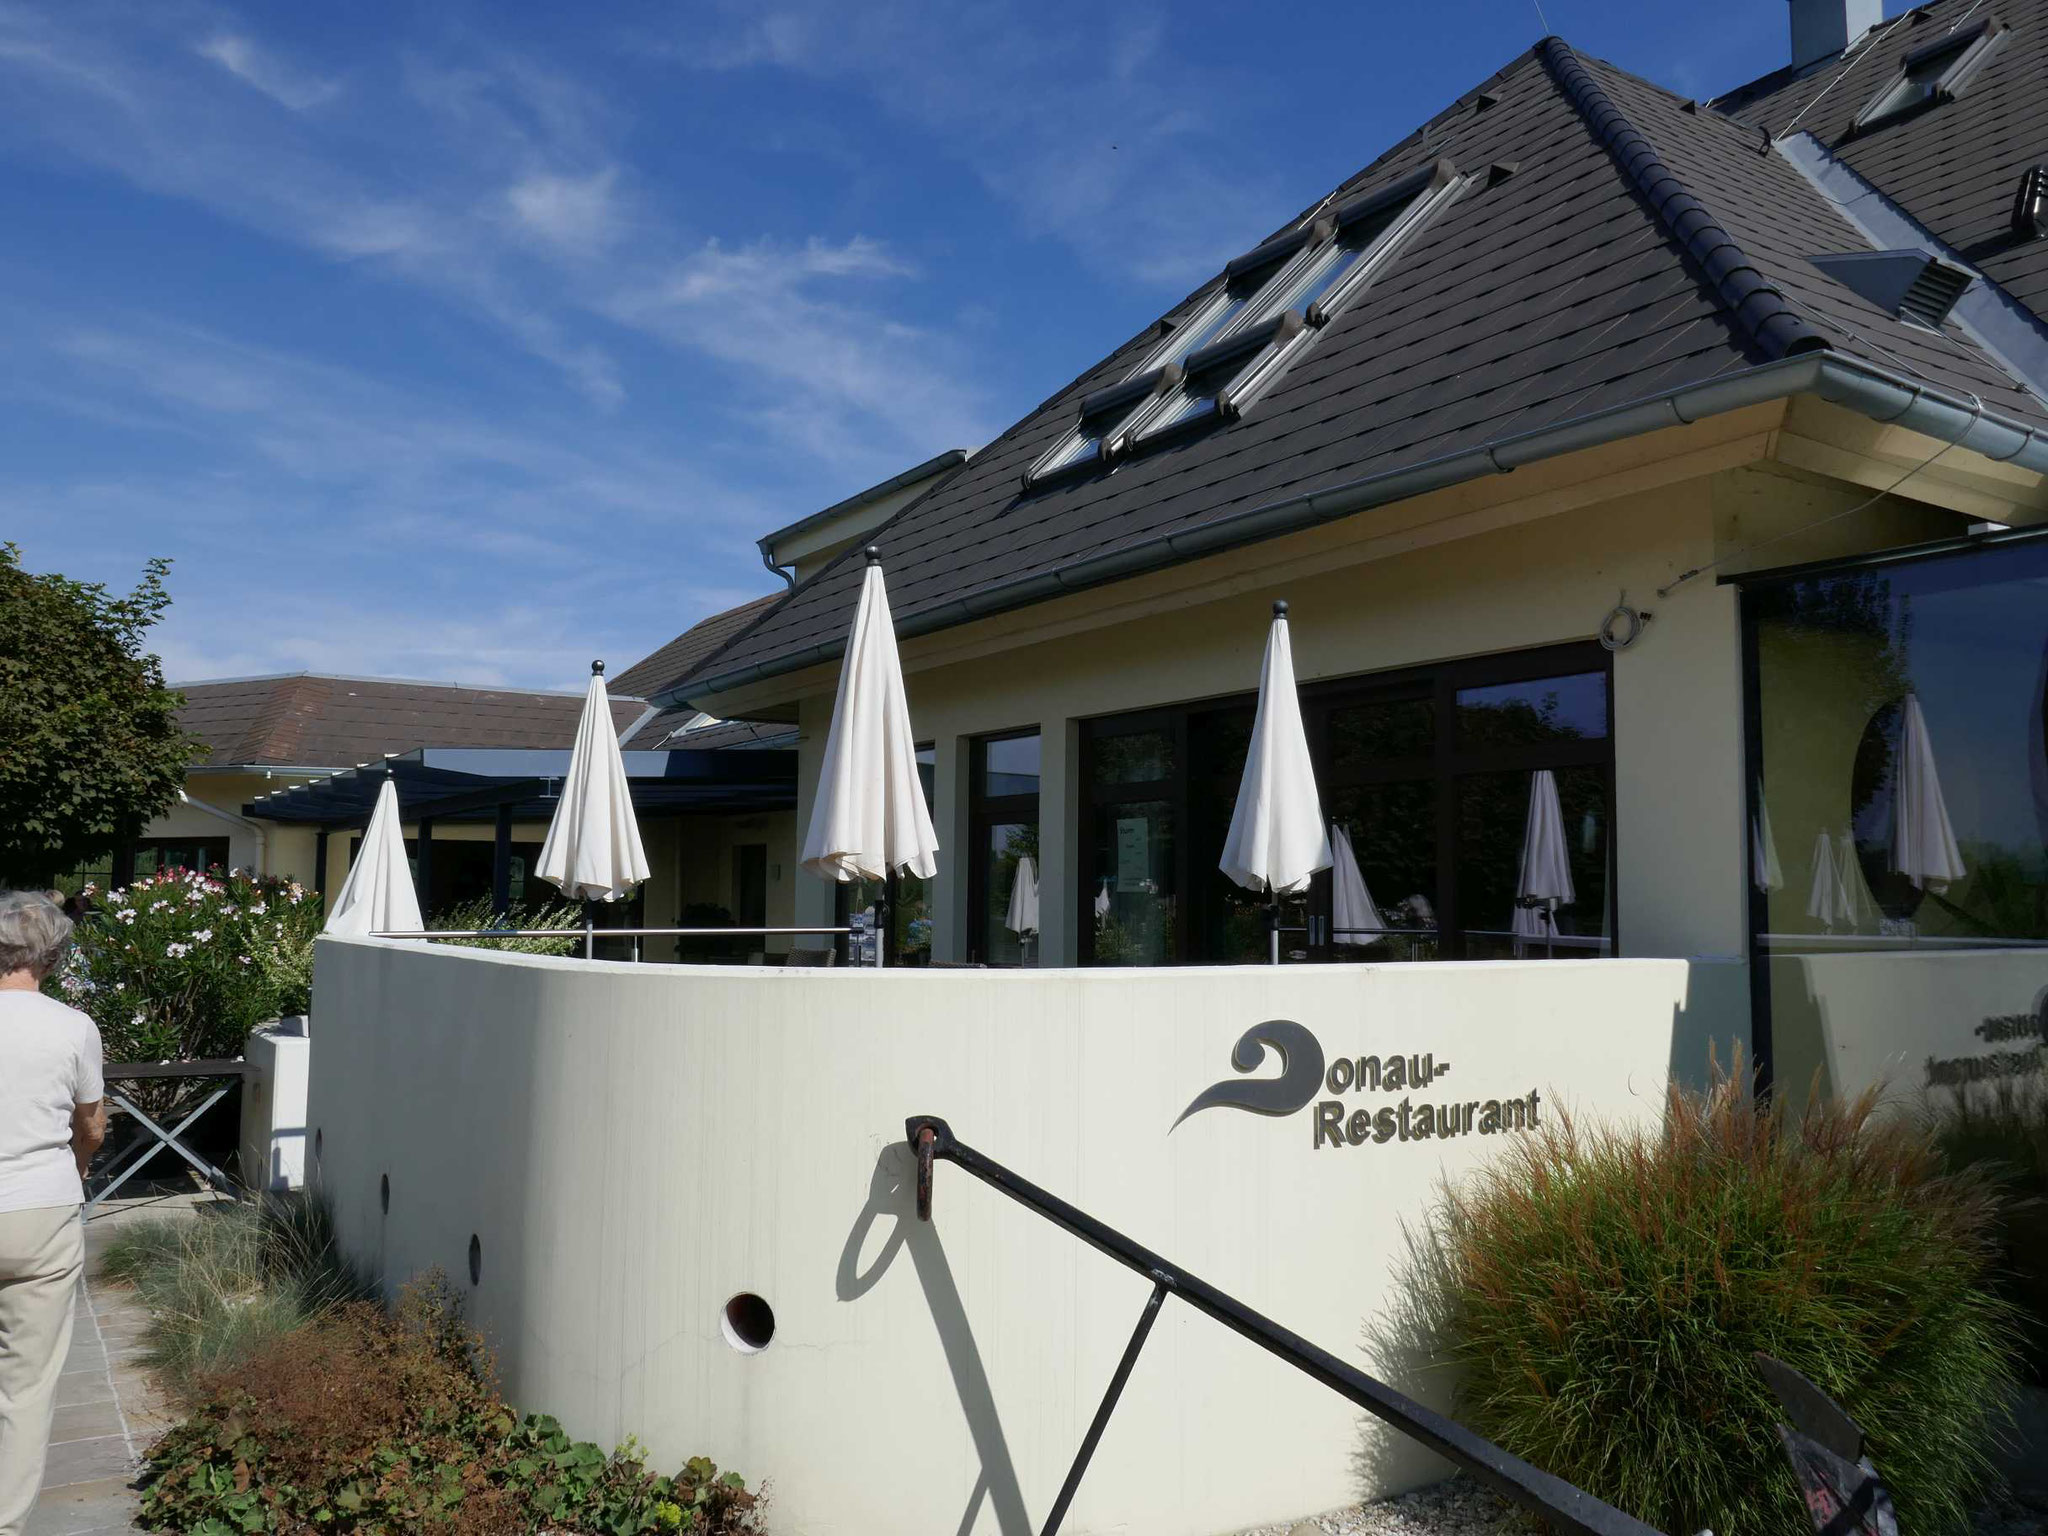 Donaurestaurant in Traismauer